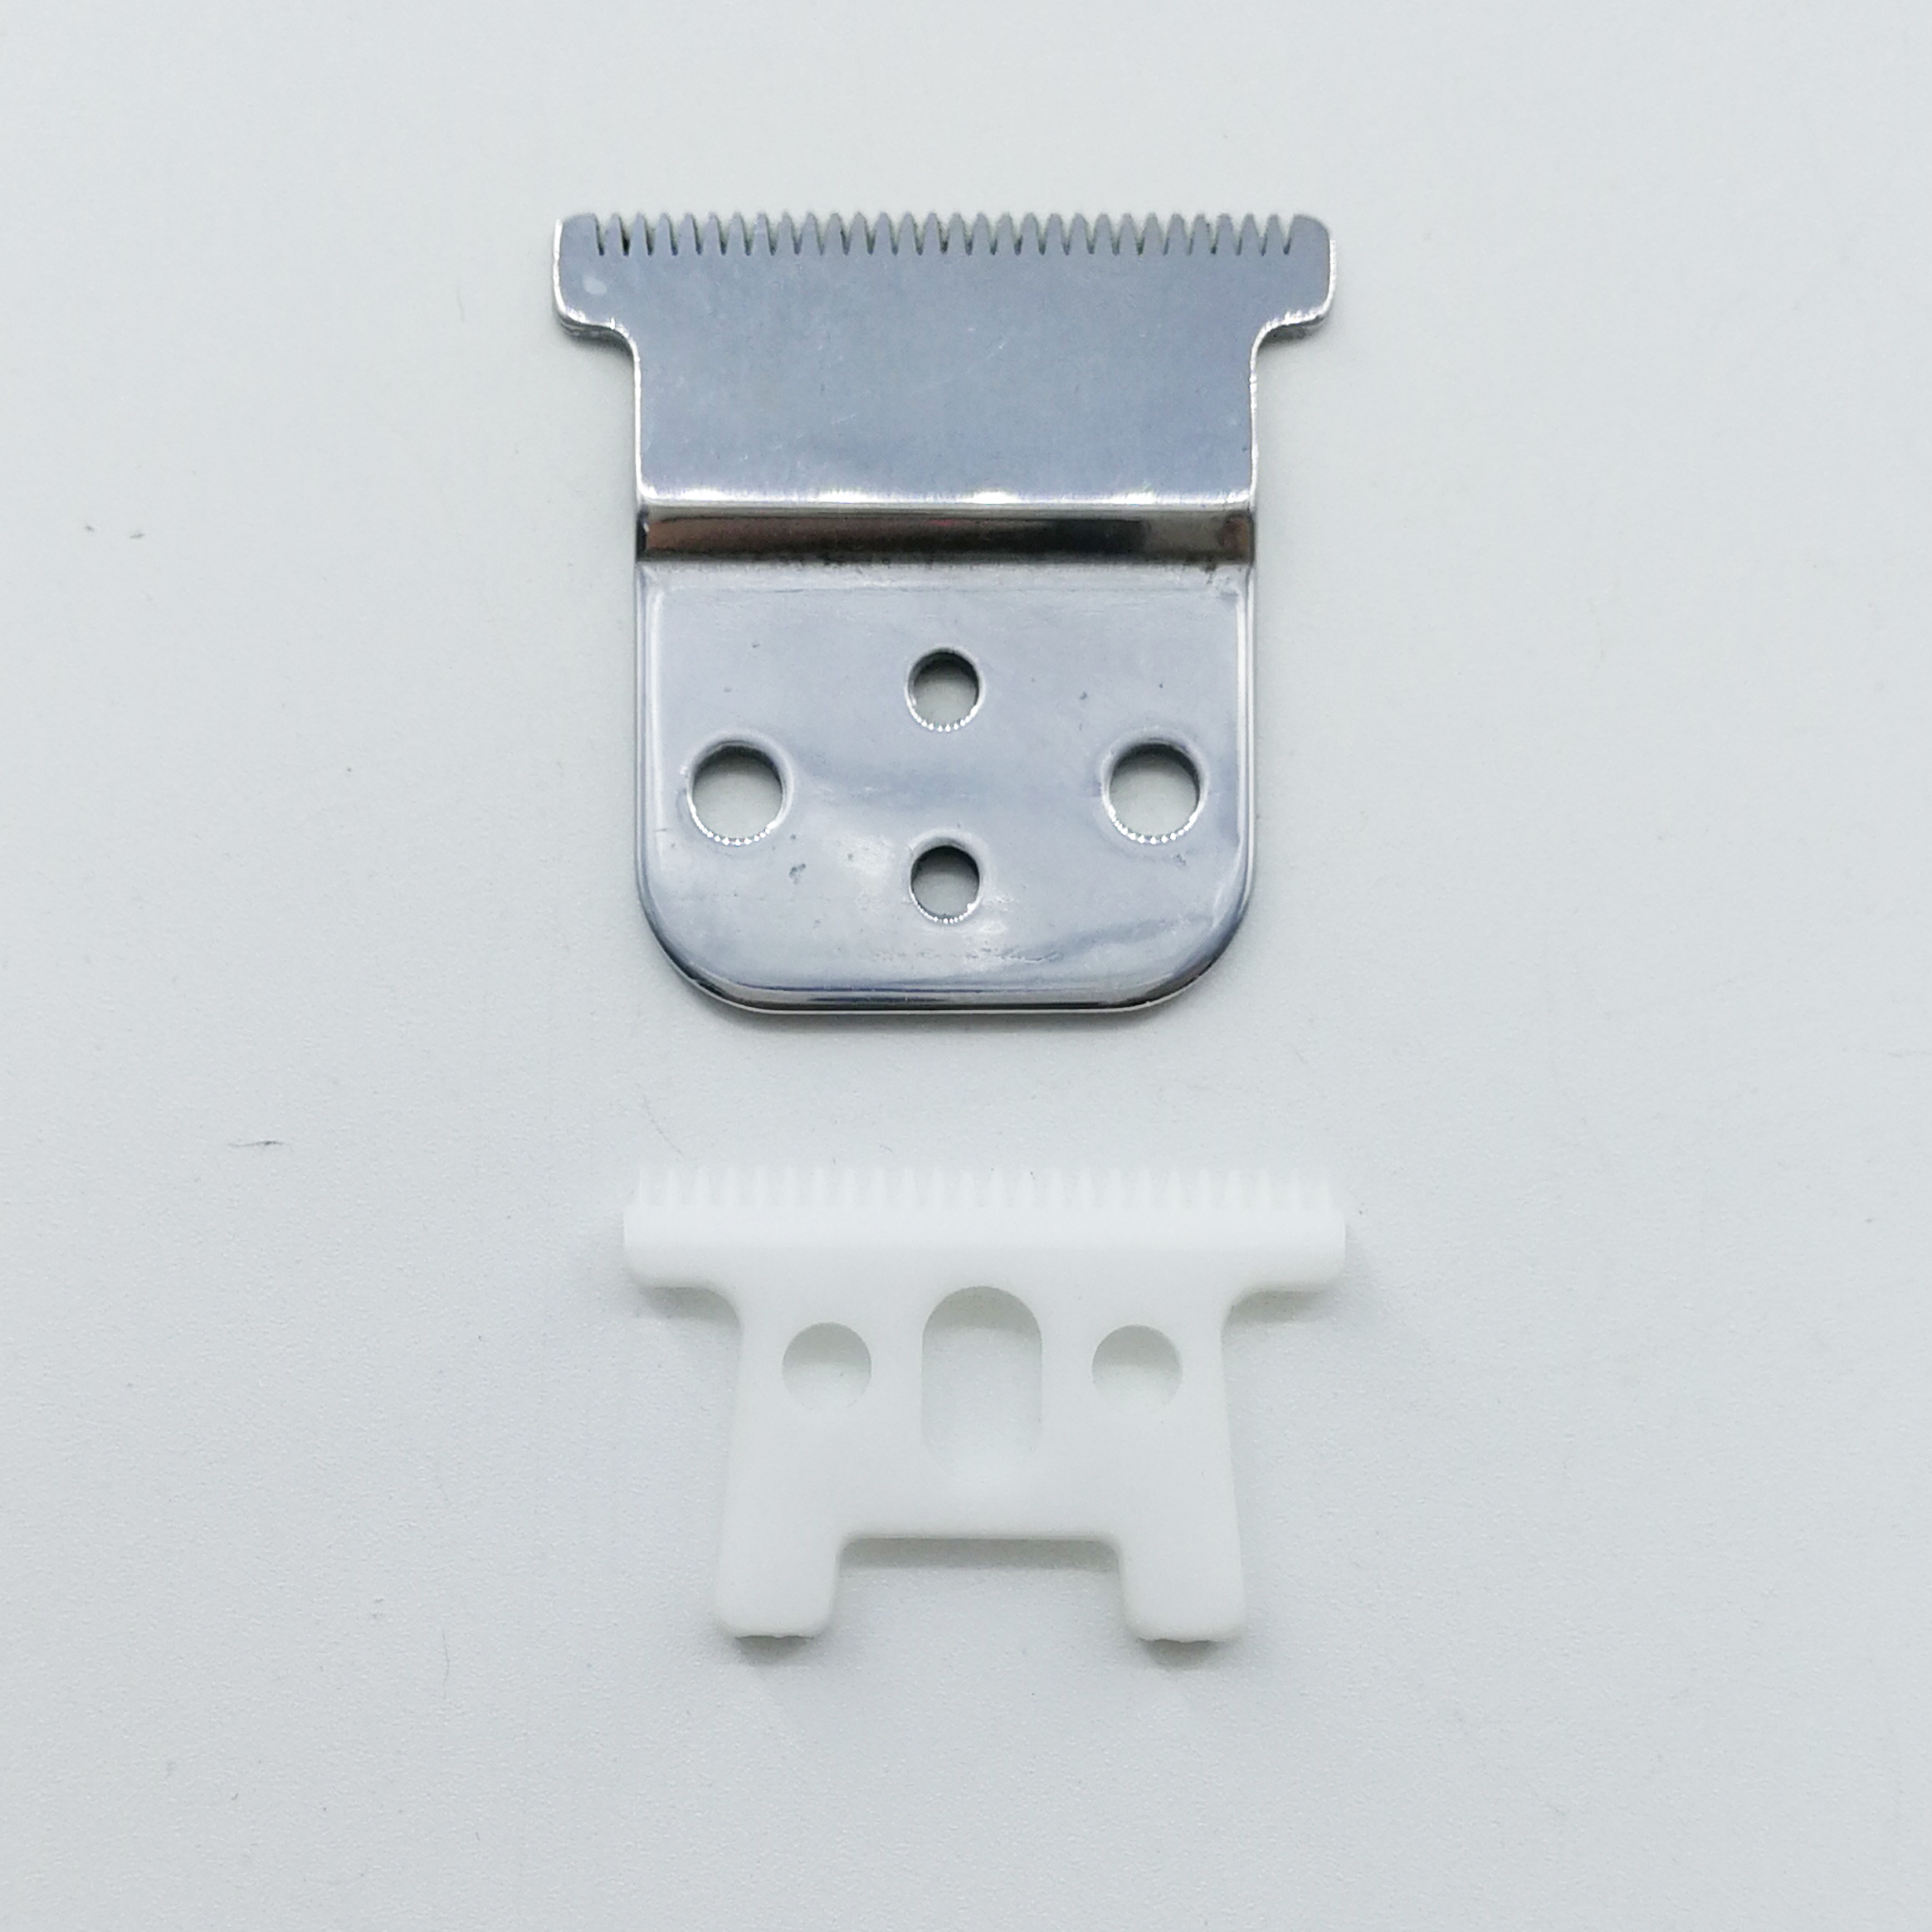 Replacement Steel And Ceramic Blade For Andis D7 D8 SlimLine Pro Li Hair Clipper Trimmer